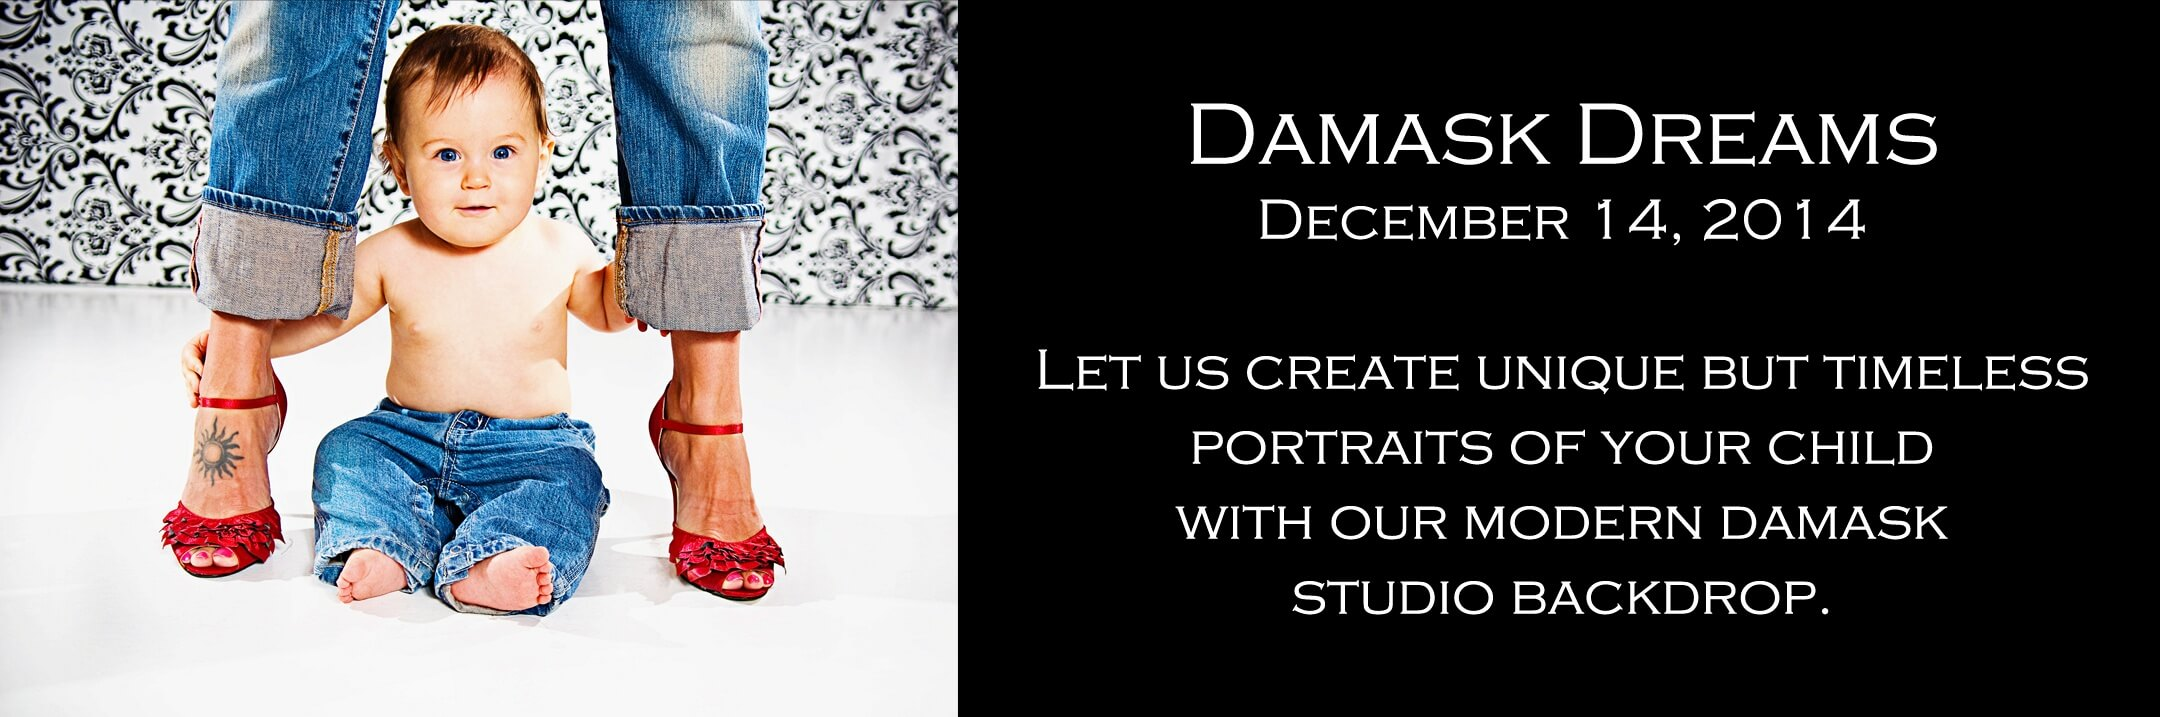 Special Children's Portrait Photography on Damask